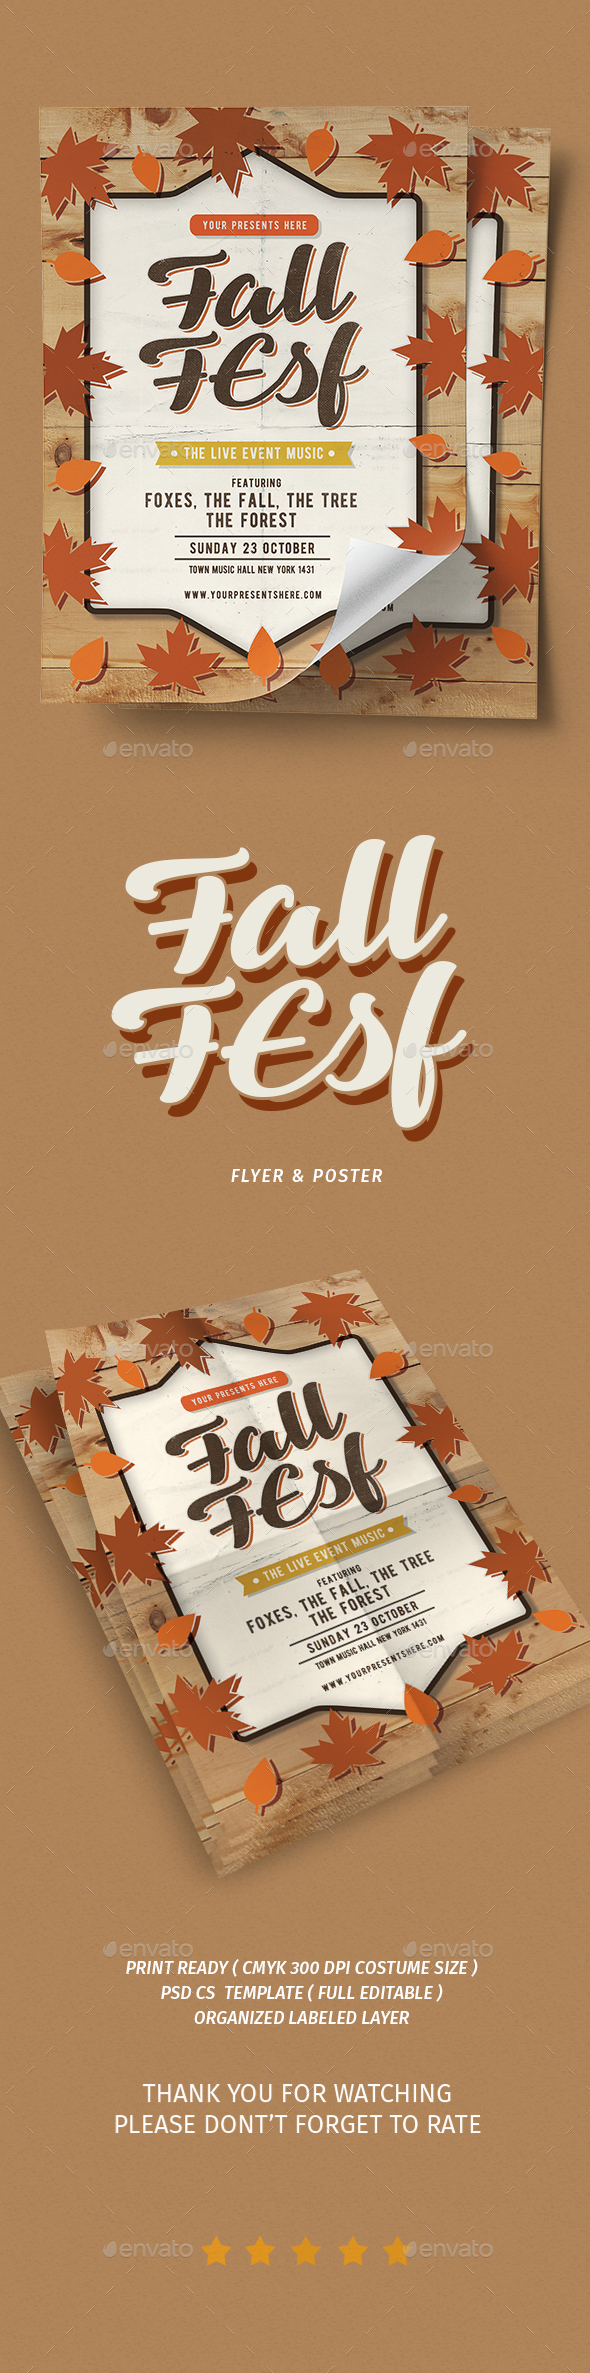 Fall Festival Vol.3 - Events Flyers